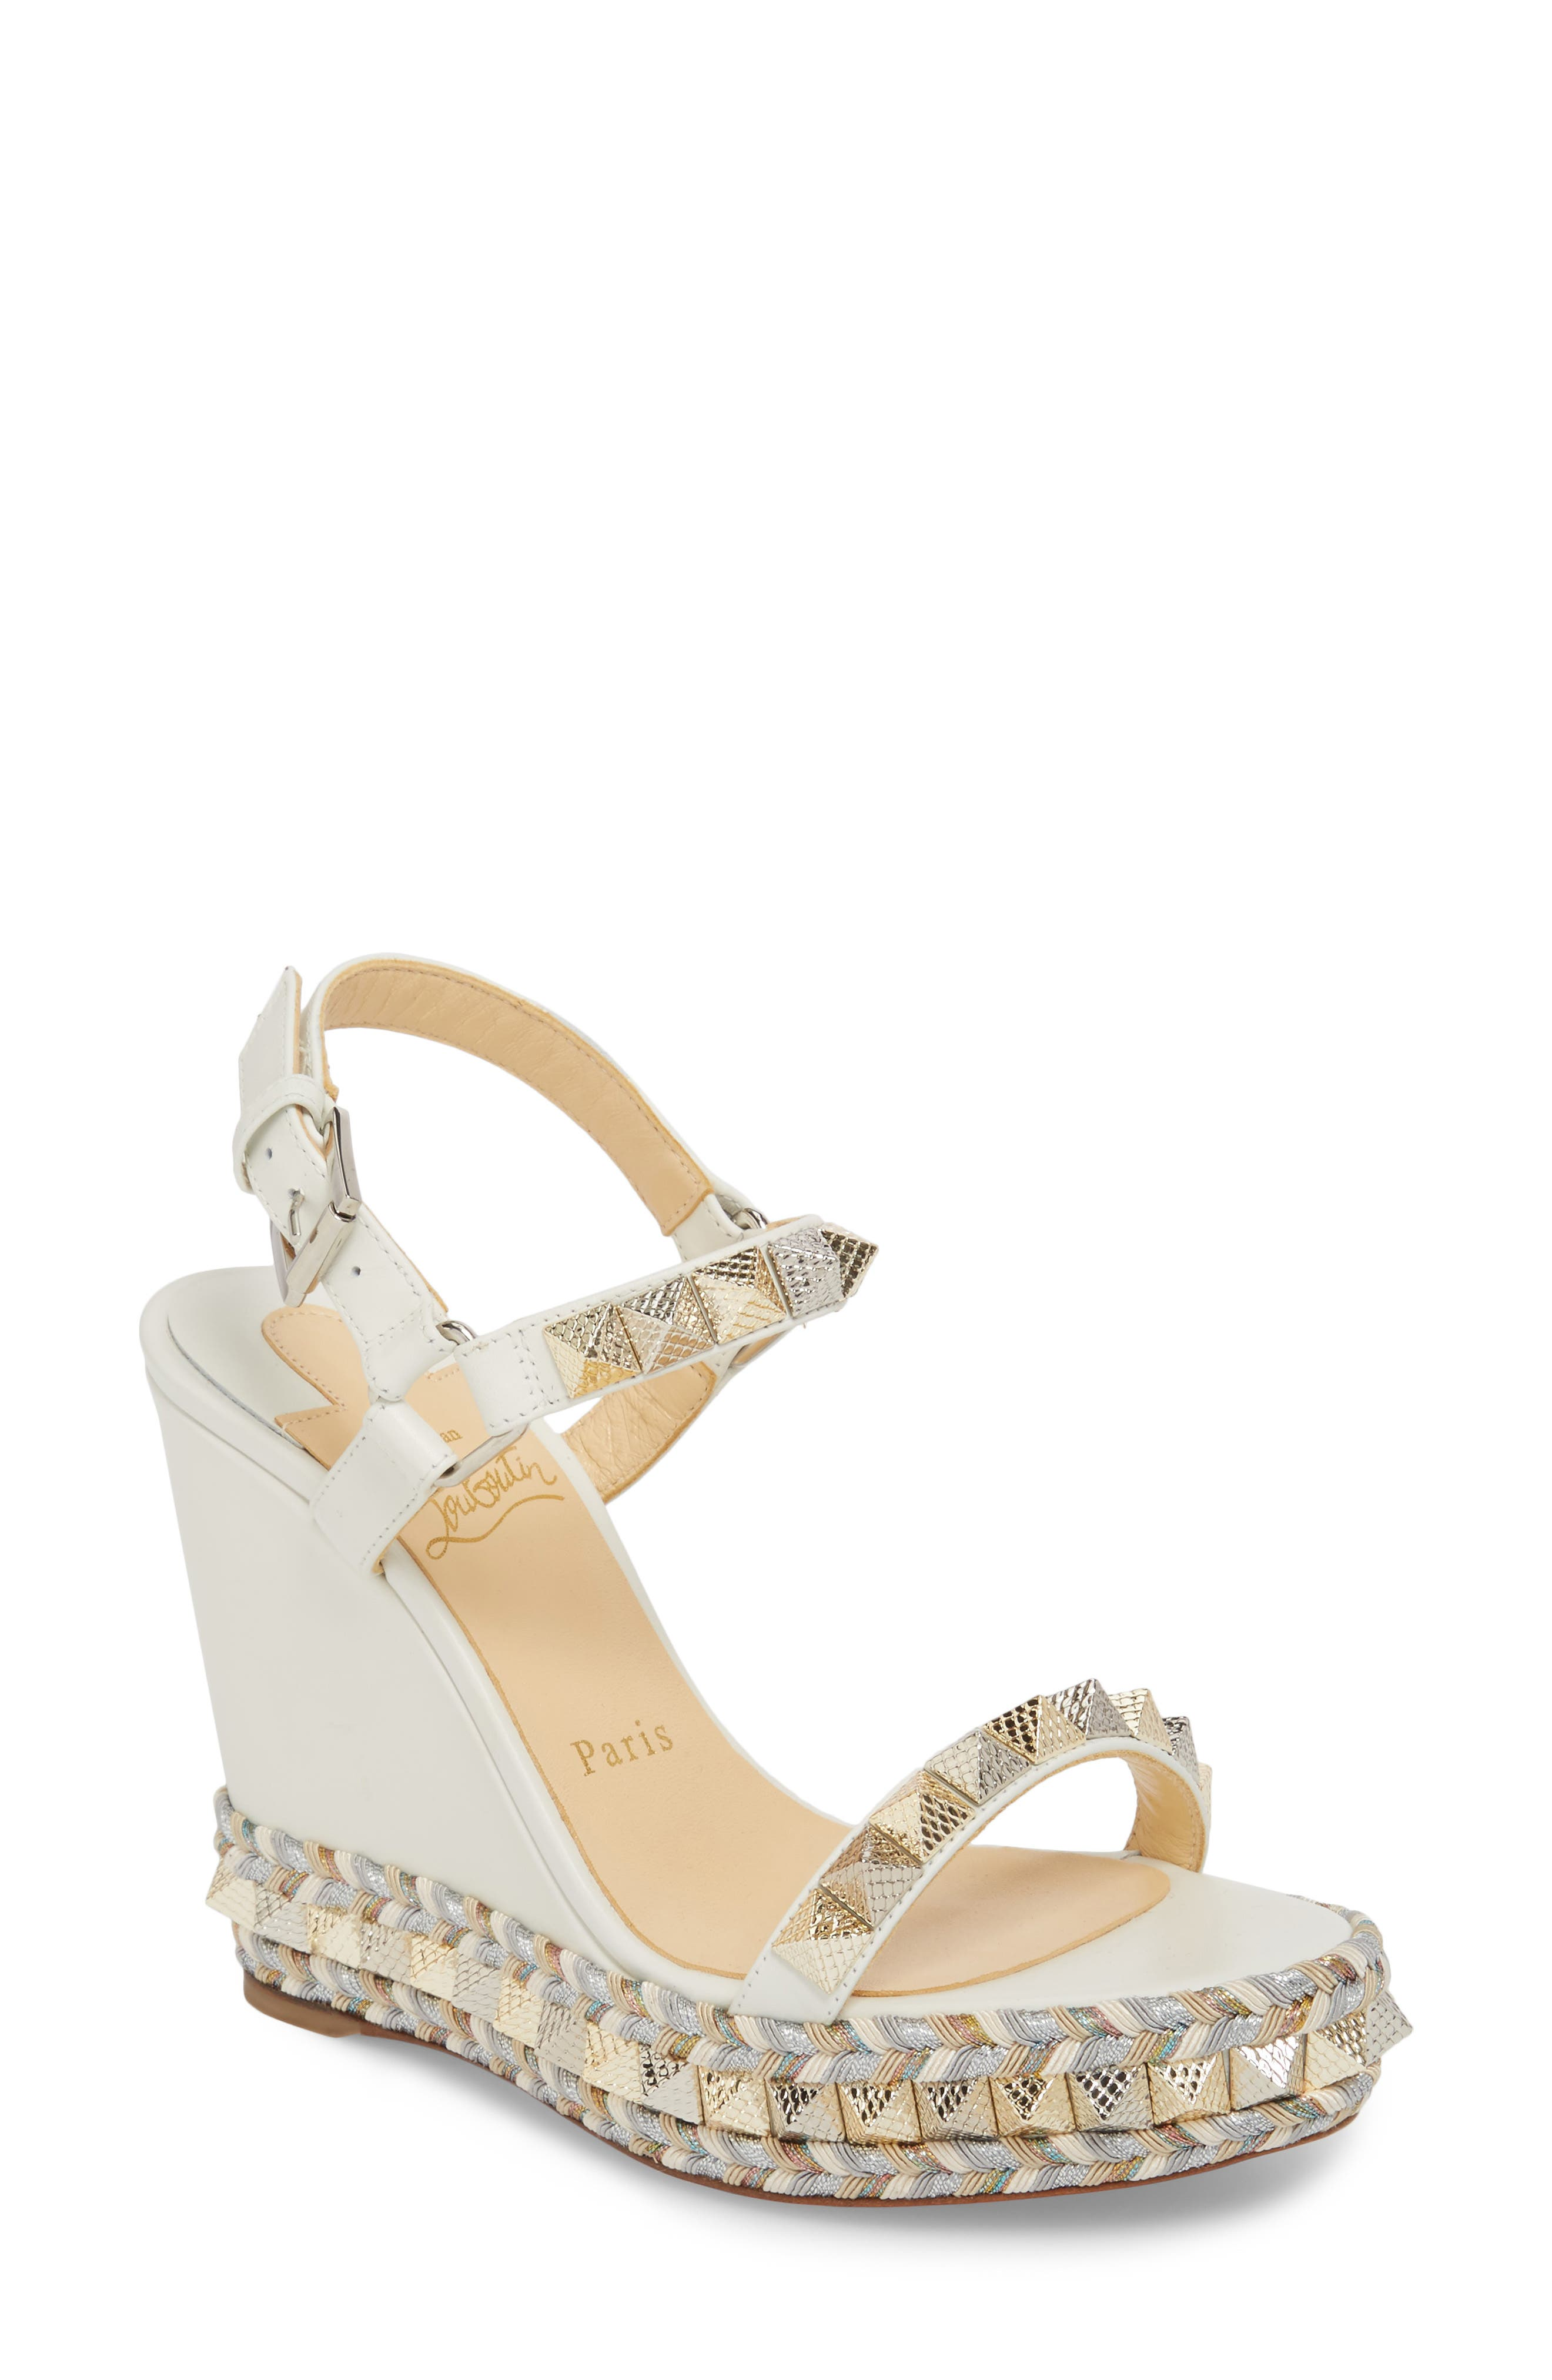 Pyraclou Wedge Sandal,                         Main,                         color, LATTE WHITE